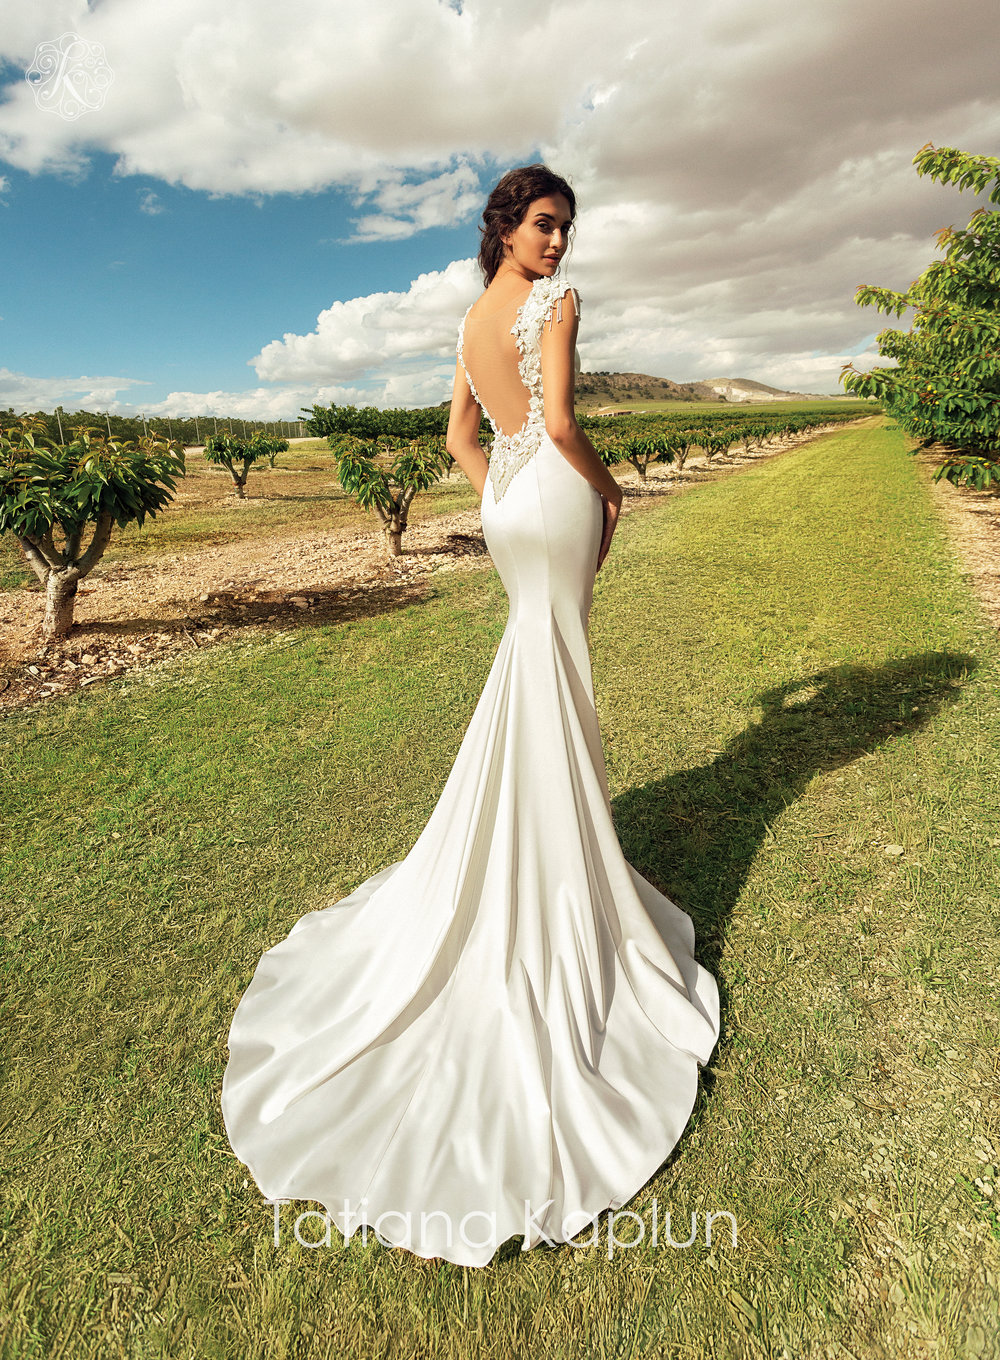 ALASIA wedding dress by Tatiana Kaplun